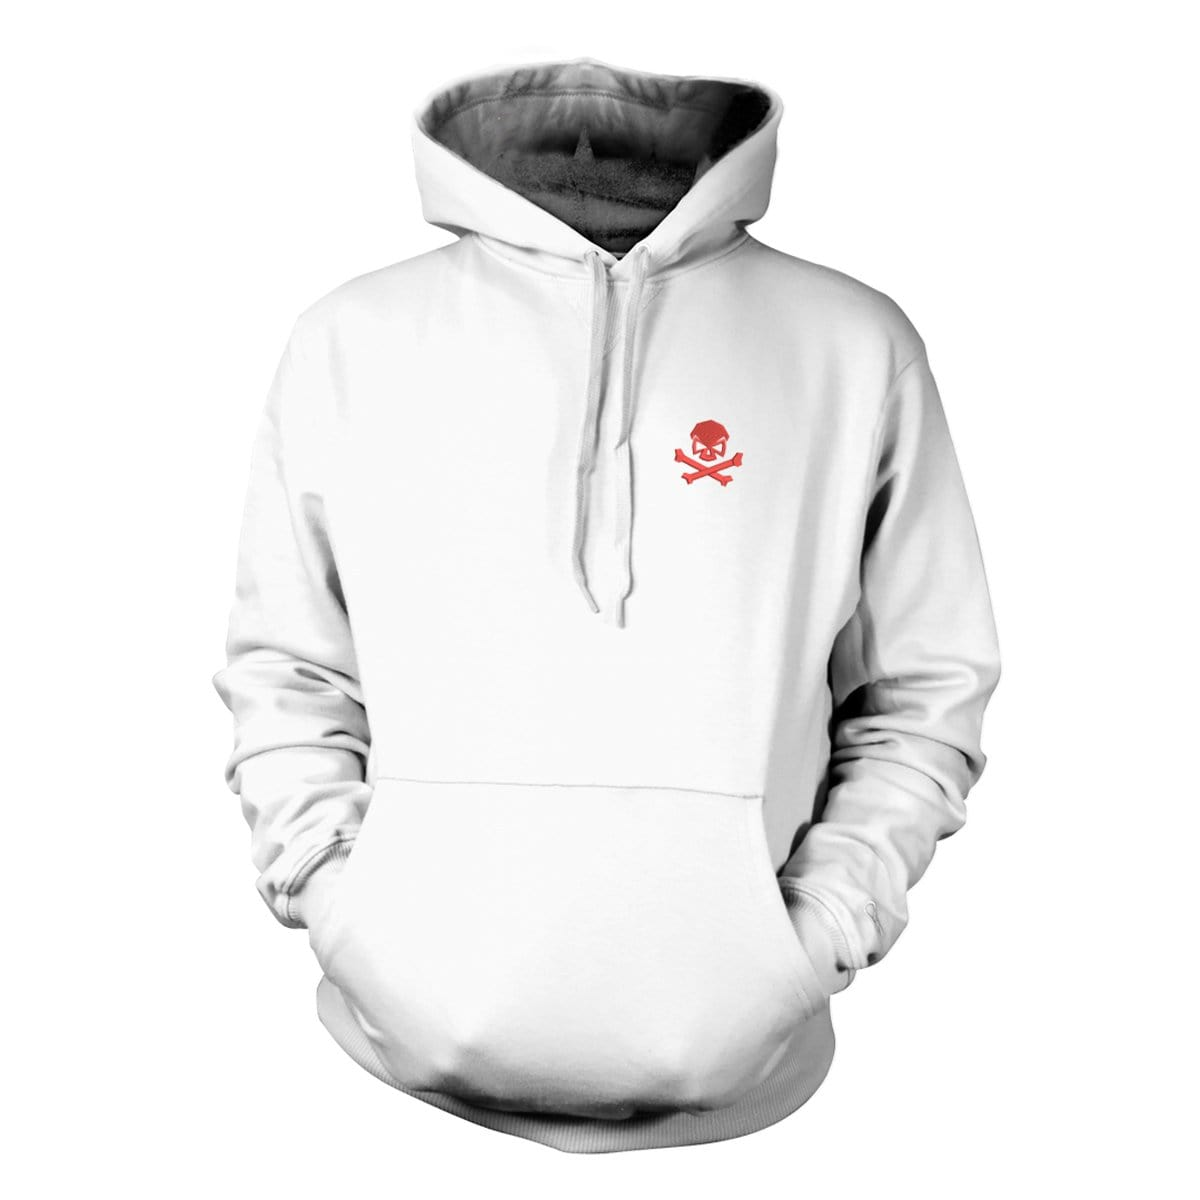 Skull & Bones Hoodie (Embroidered) - White/Red - Hoodies - Pipe Hitters Union